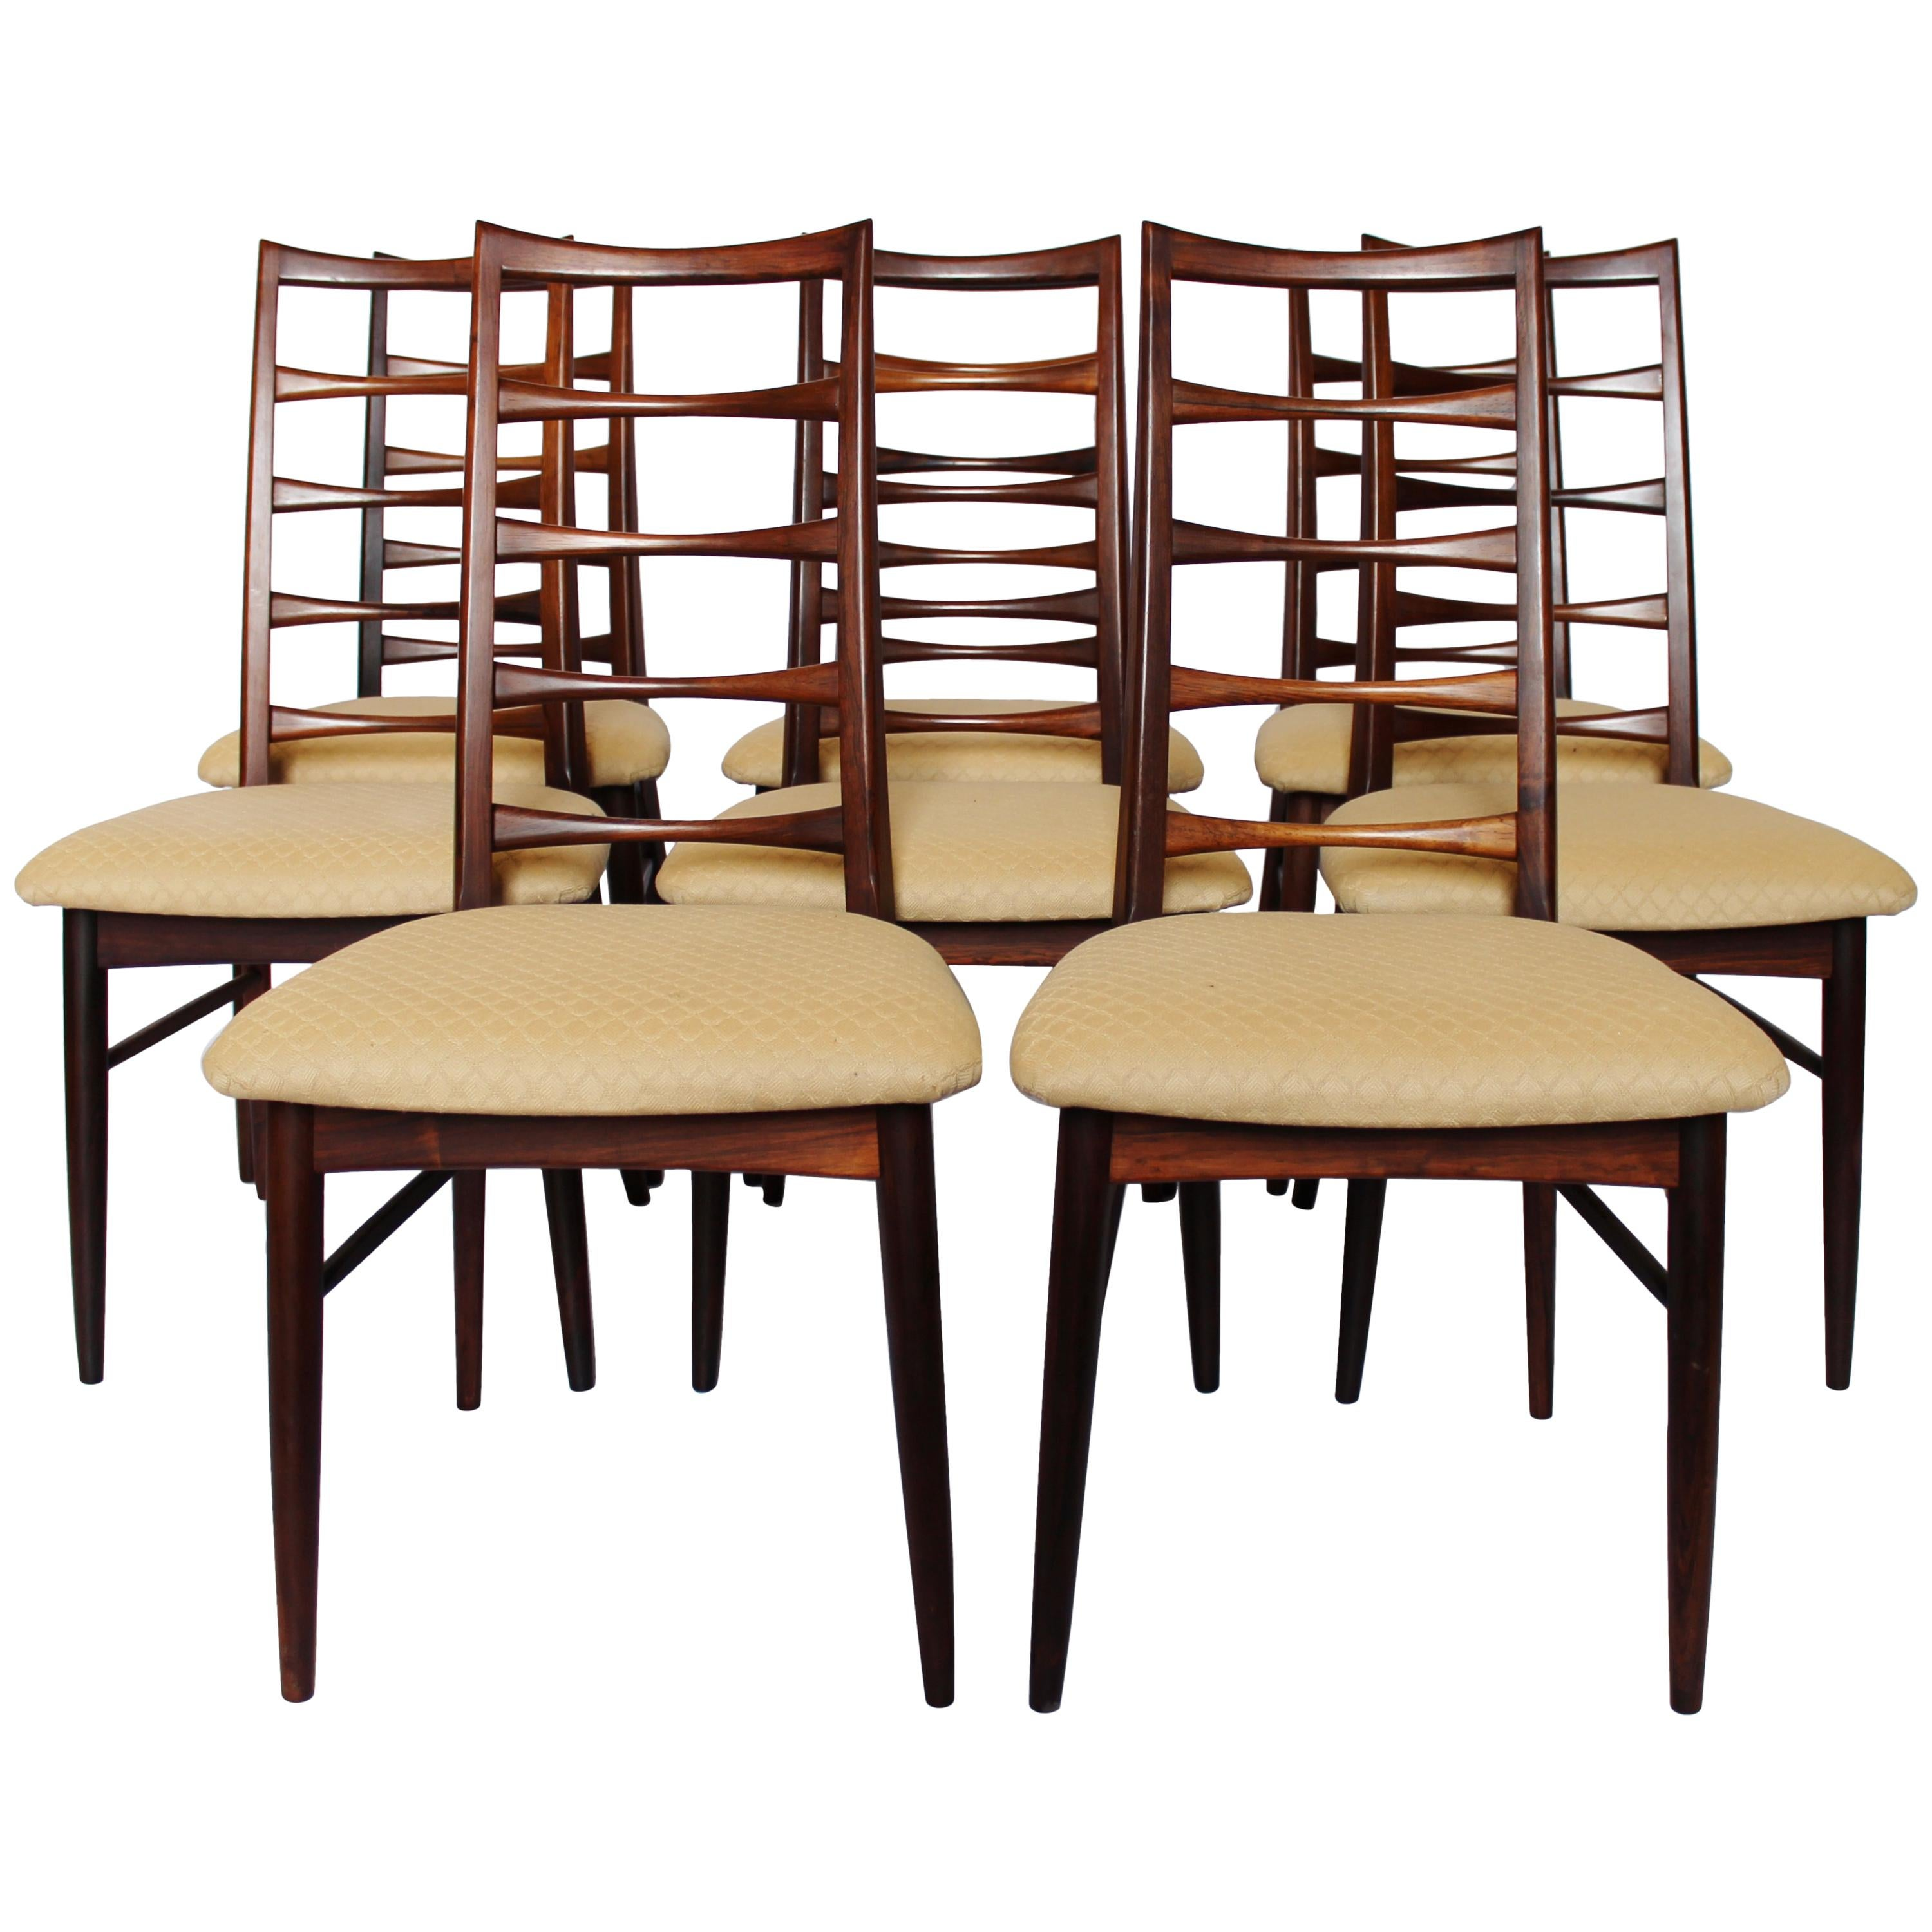 Set of Eight Dining Chairs, Model Lis, in Rosewood by Niels Koefoed, 1960s